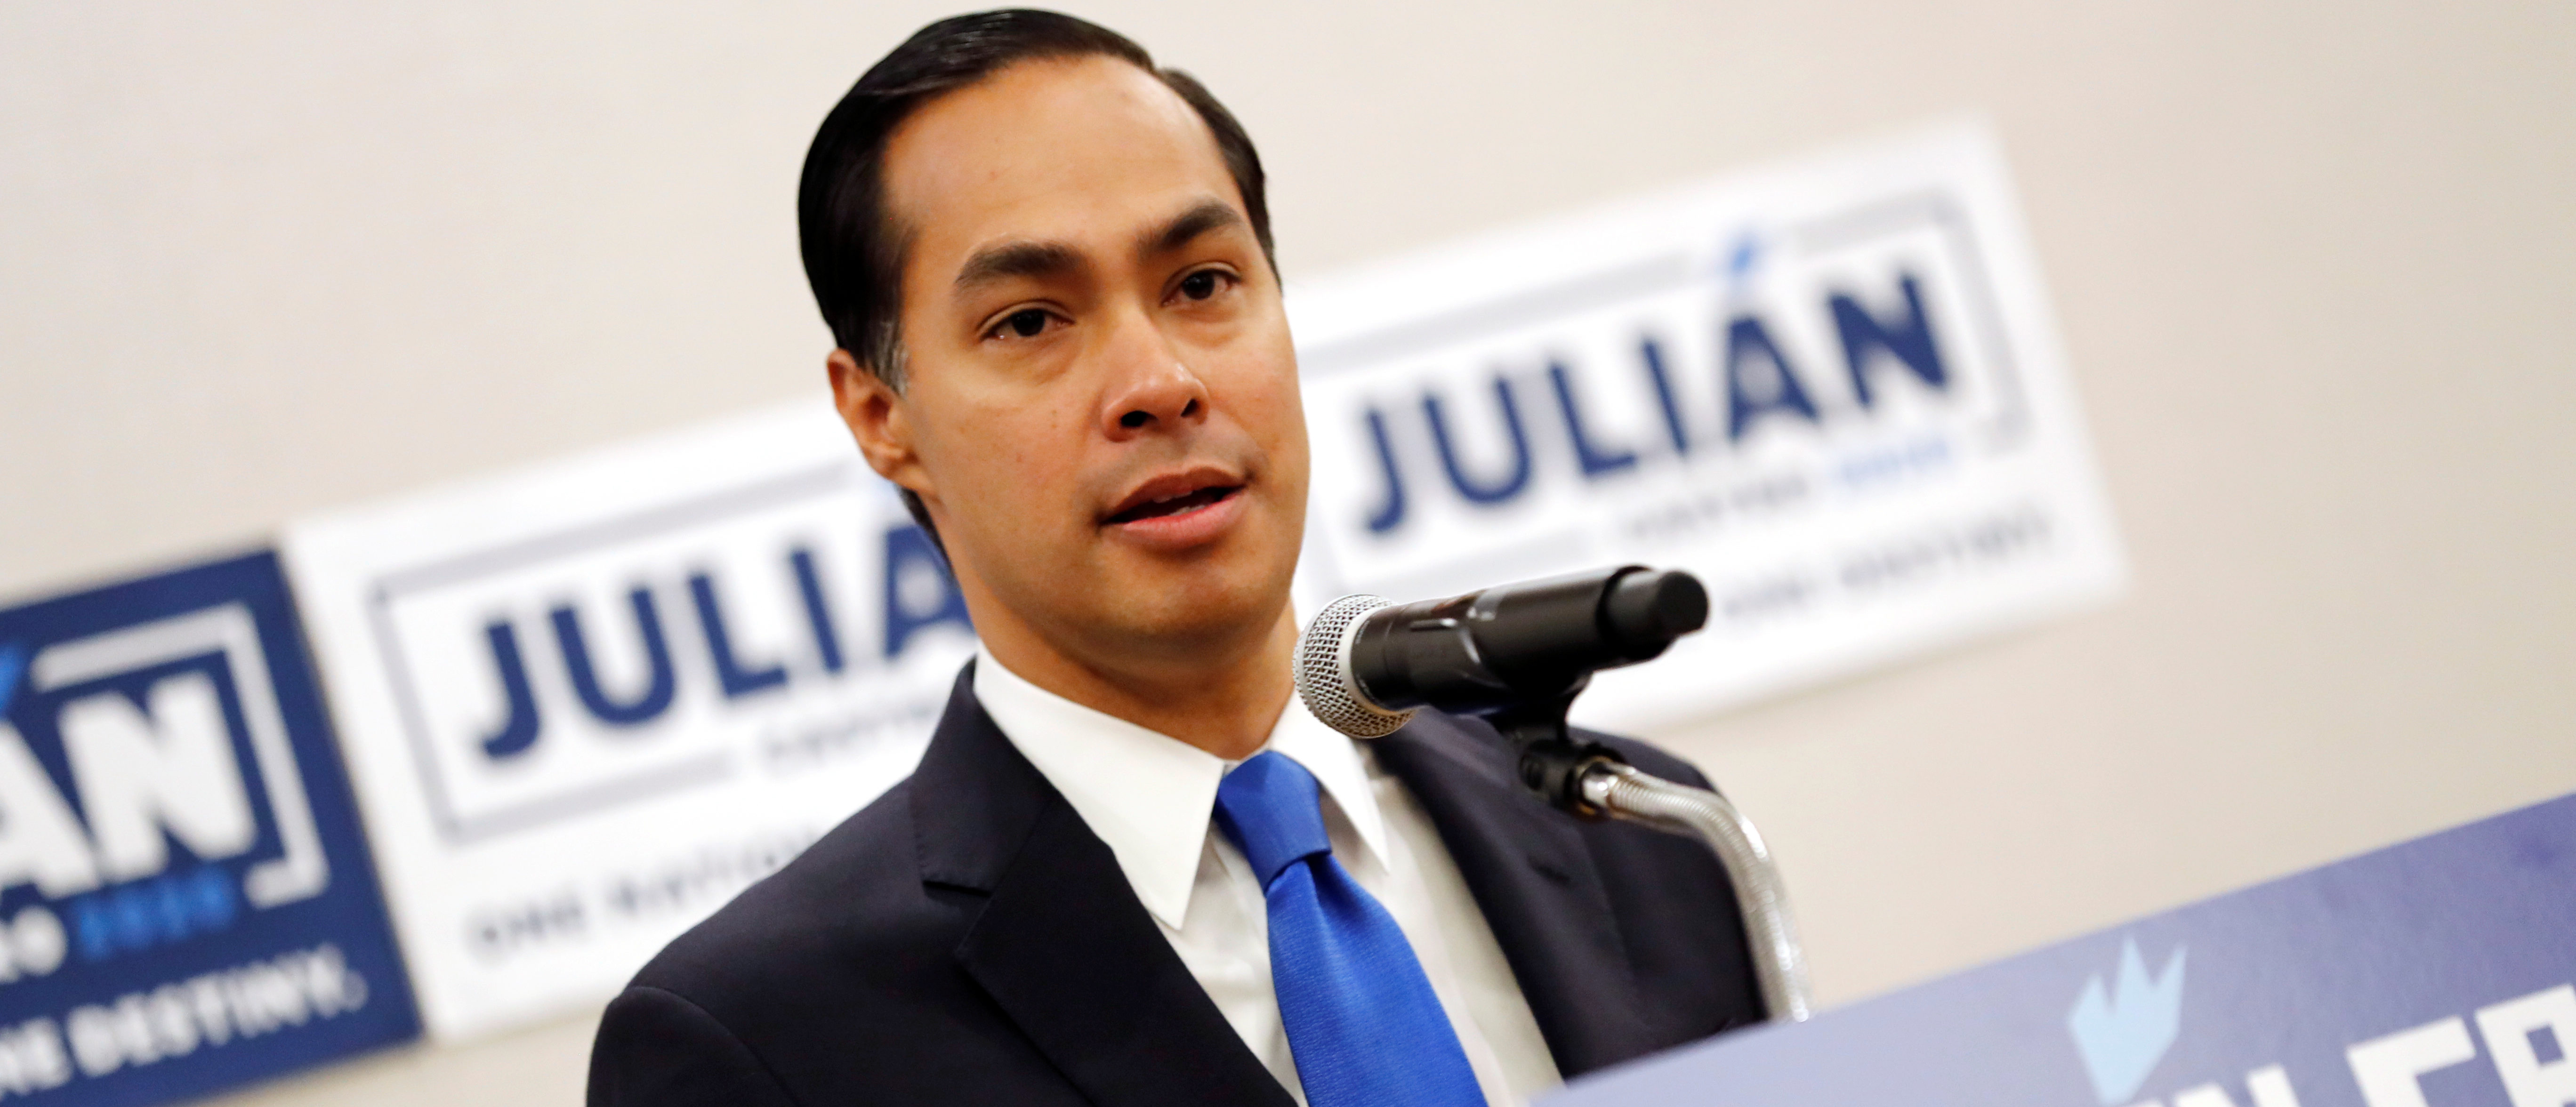 Former HUD Secretary and Democratic presidential candidate Julian Castro speaks to members of the media the morning after participating in the first U.S. 2020 presidential election Democratic candidates debate in Miami, Florida, U.S., June 27, 2019. REUTERS/Mike Segar